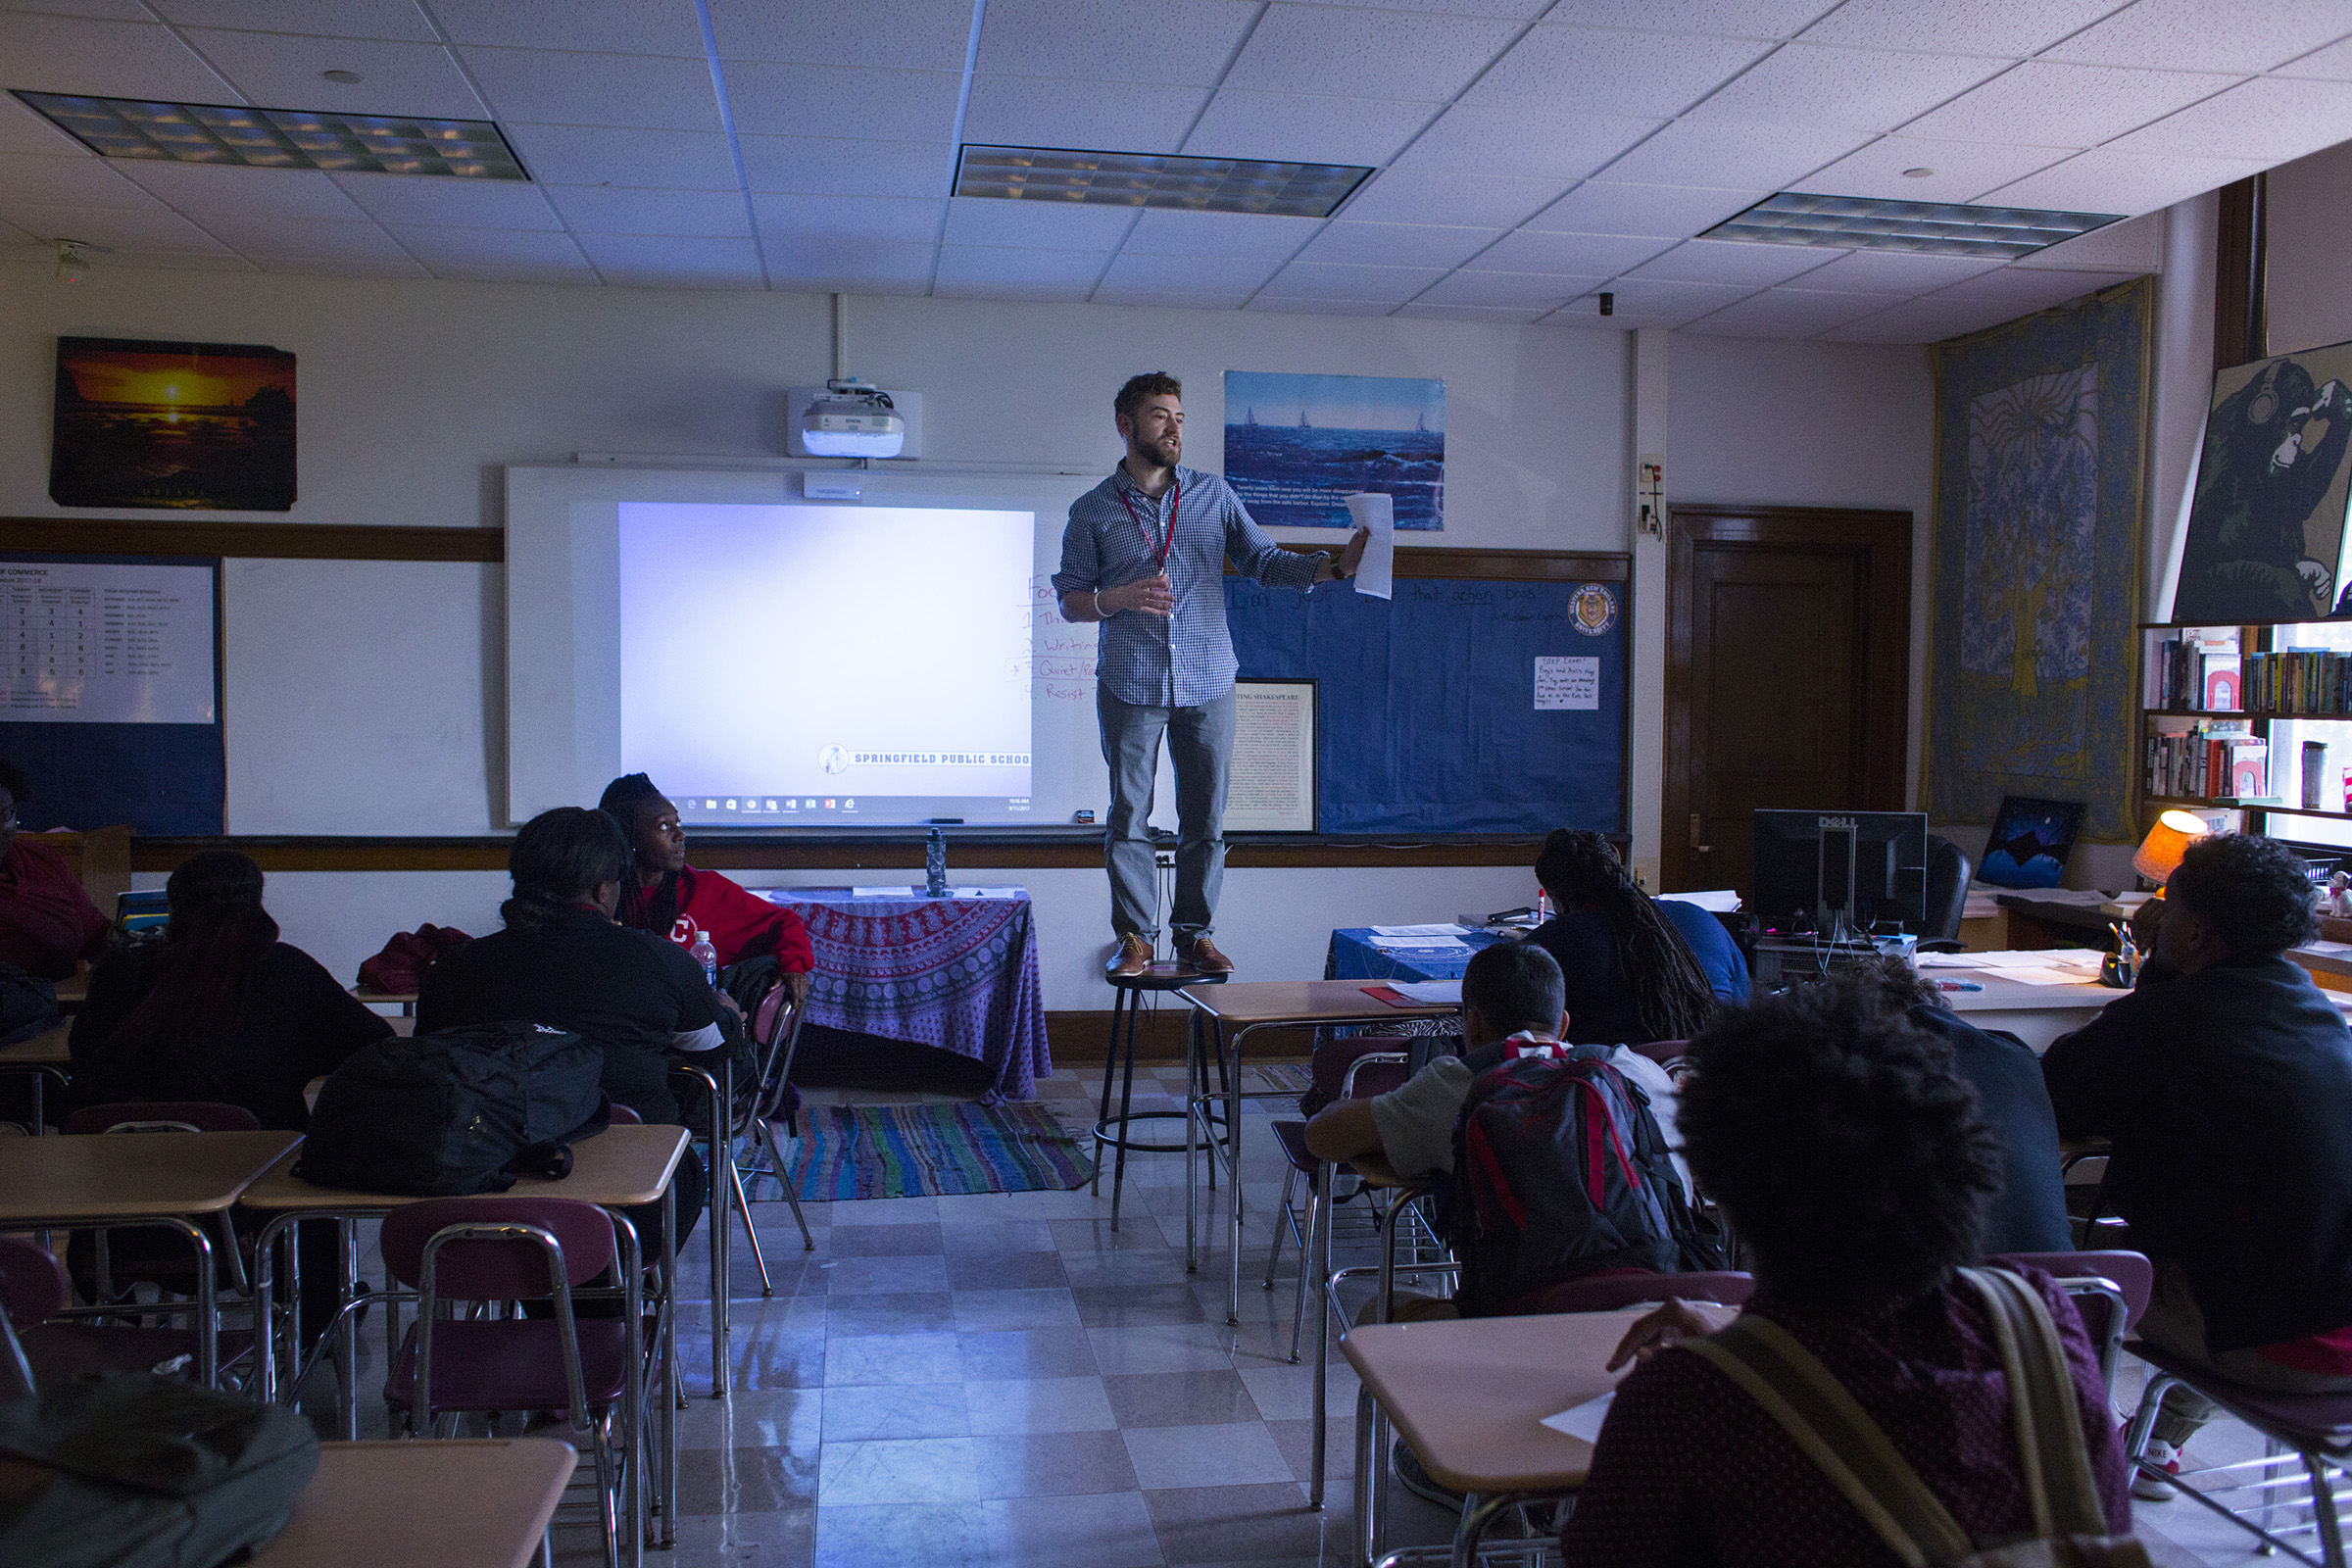 Brian Damboise, an English and journalism teacher at the High School of Commerce, stands on a stool in order to get the attention of his students at the beginning of their class in Springfield, Mass., on Monday, September, 11, 2017. (Photo by Brittany Greeson)